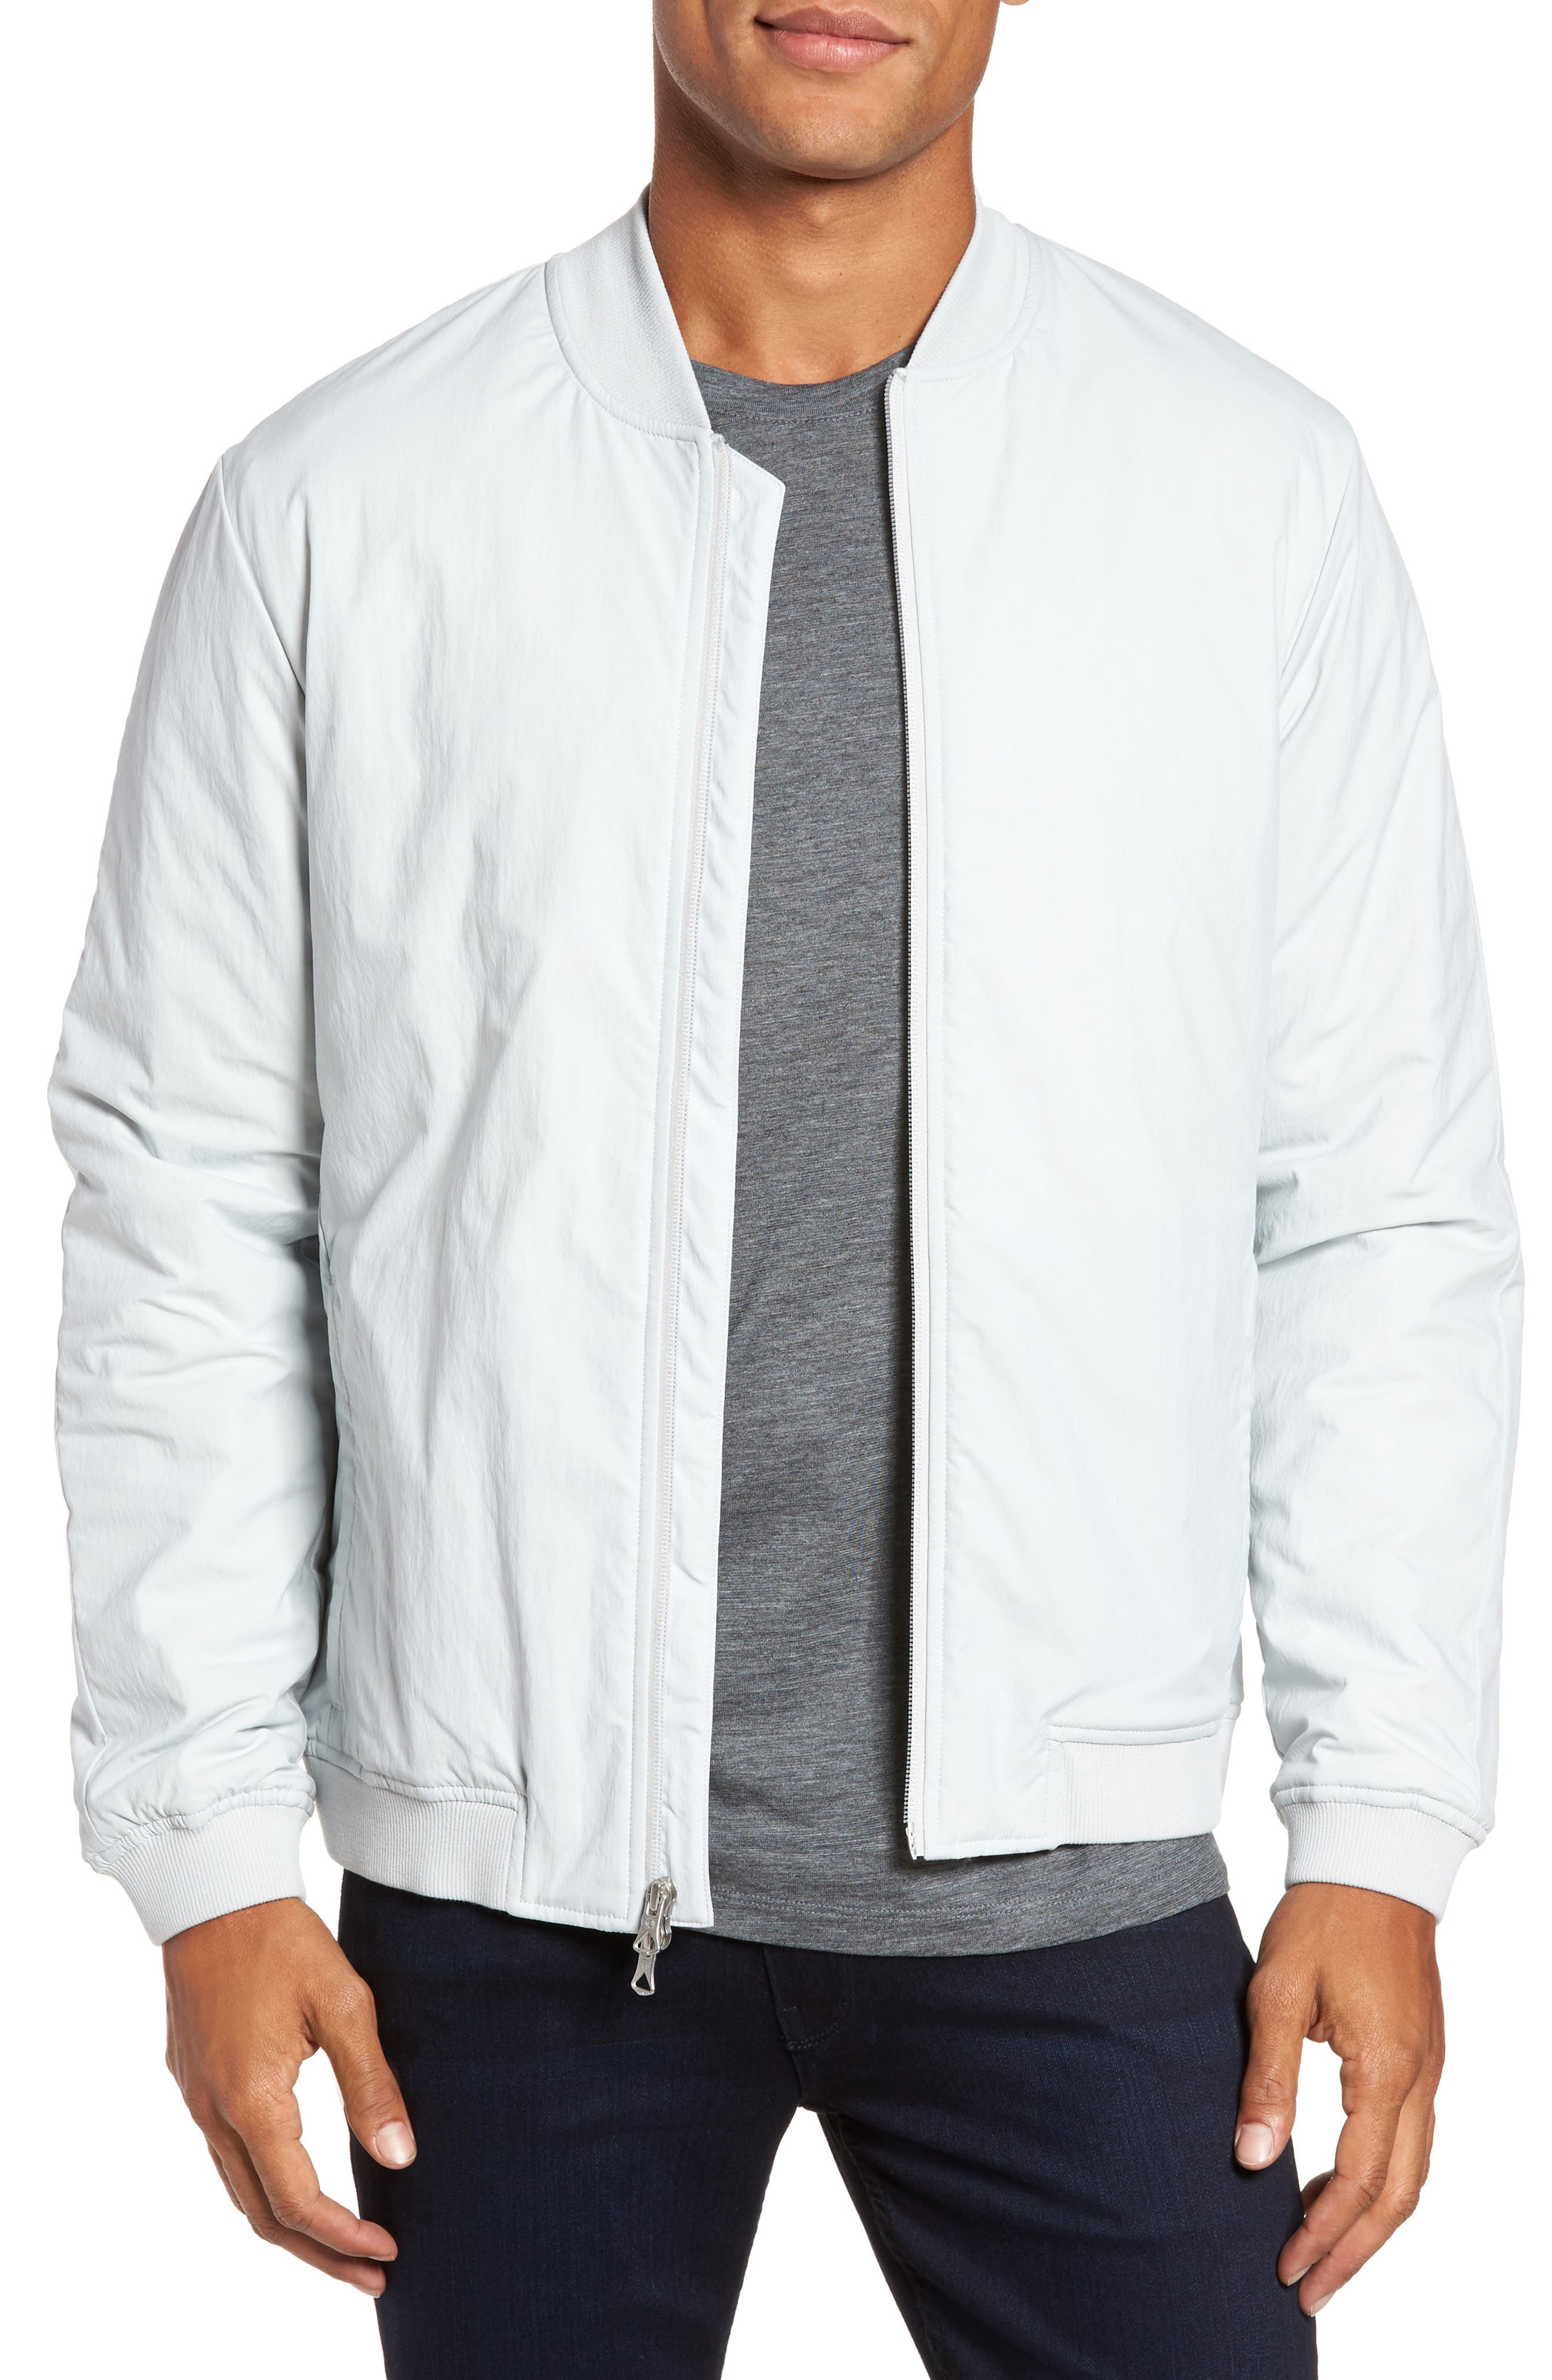 Insulated Bomber Jacket,                             Main thumbnail 1, color,                             053